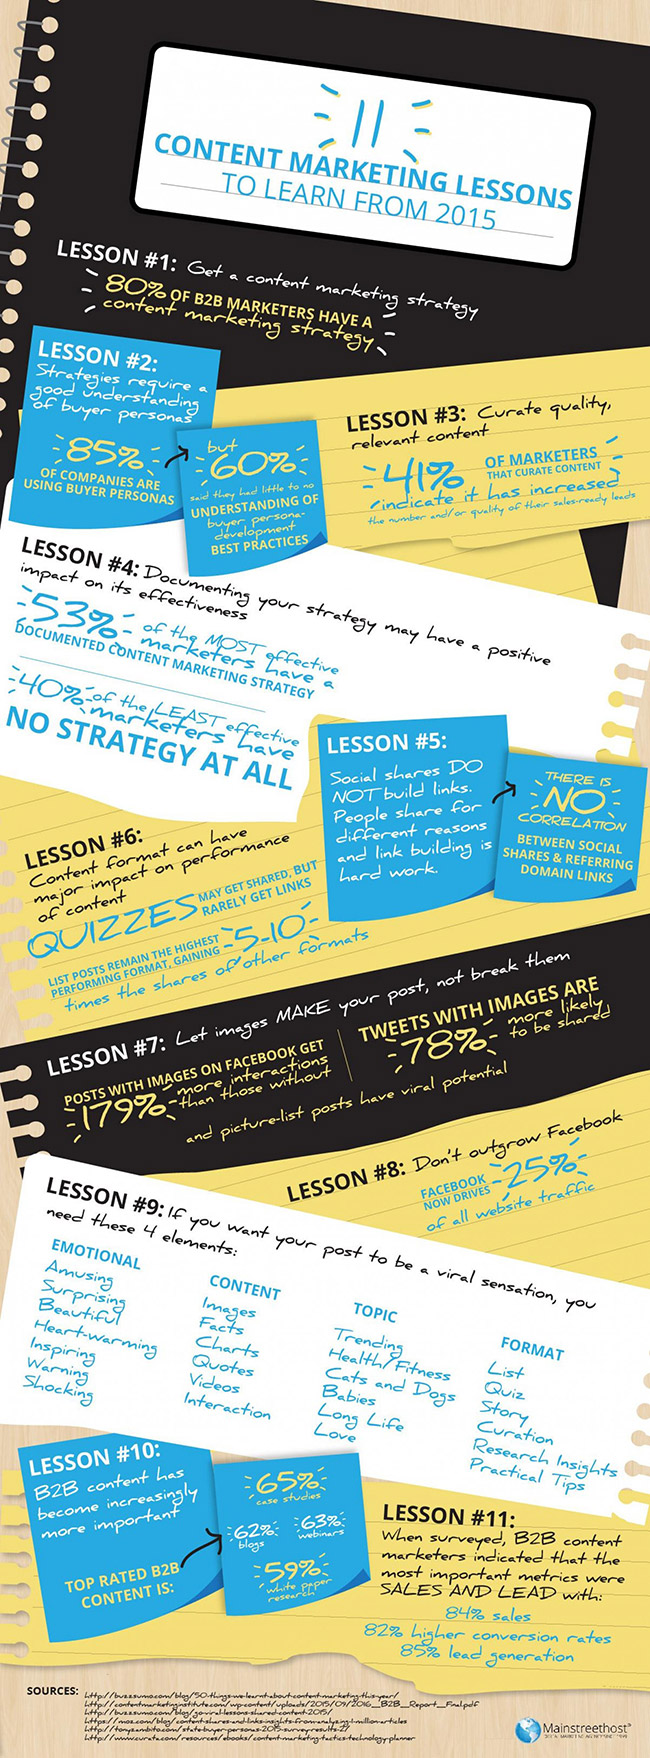 11-content-marketing-lessons-to-learn-from-2015-infographic_569d3124e823a_w1500